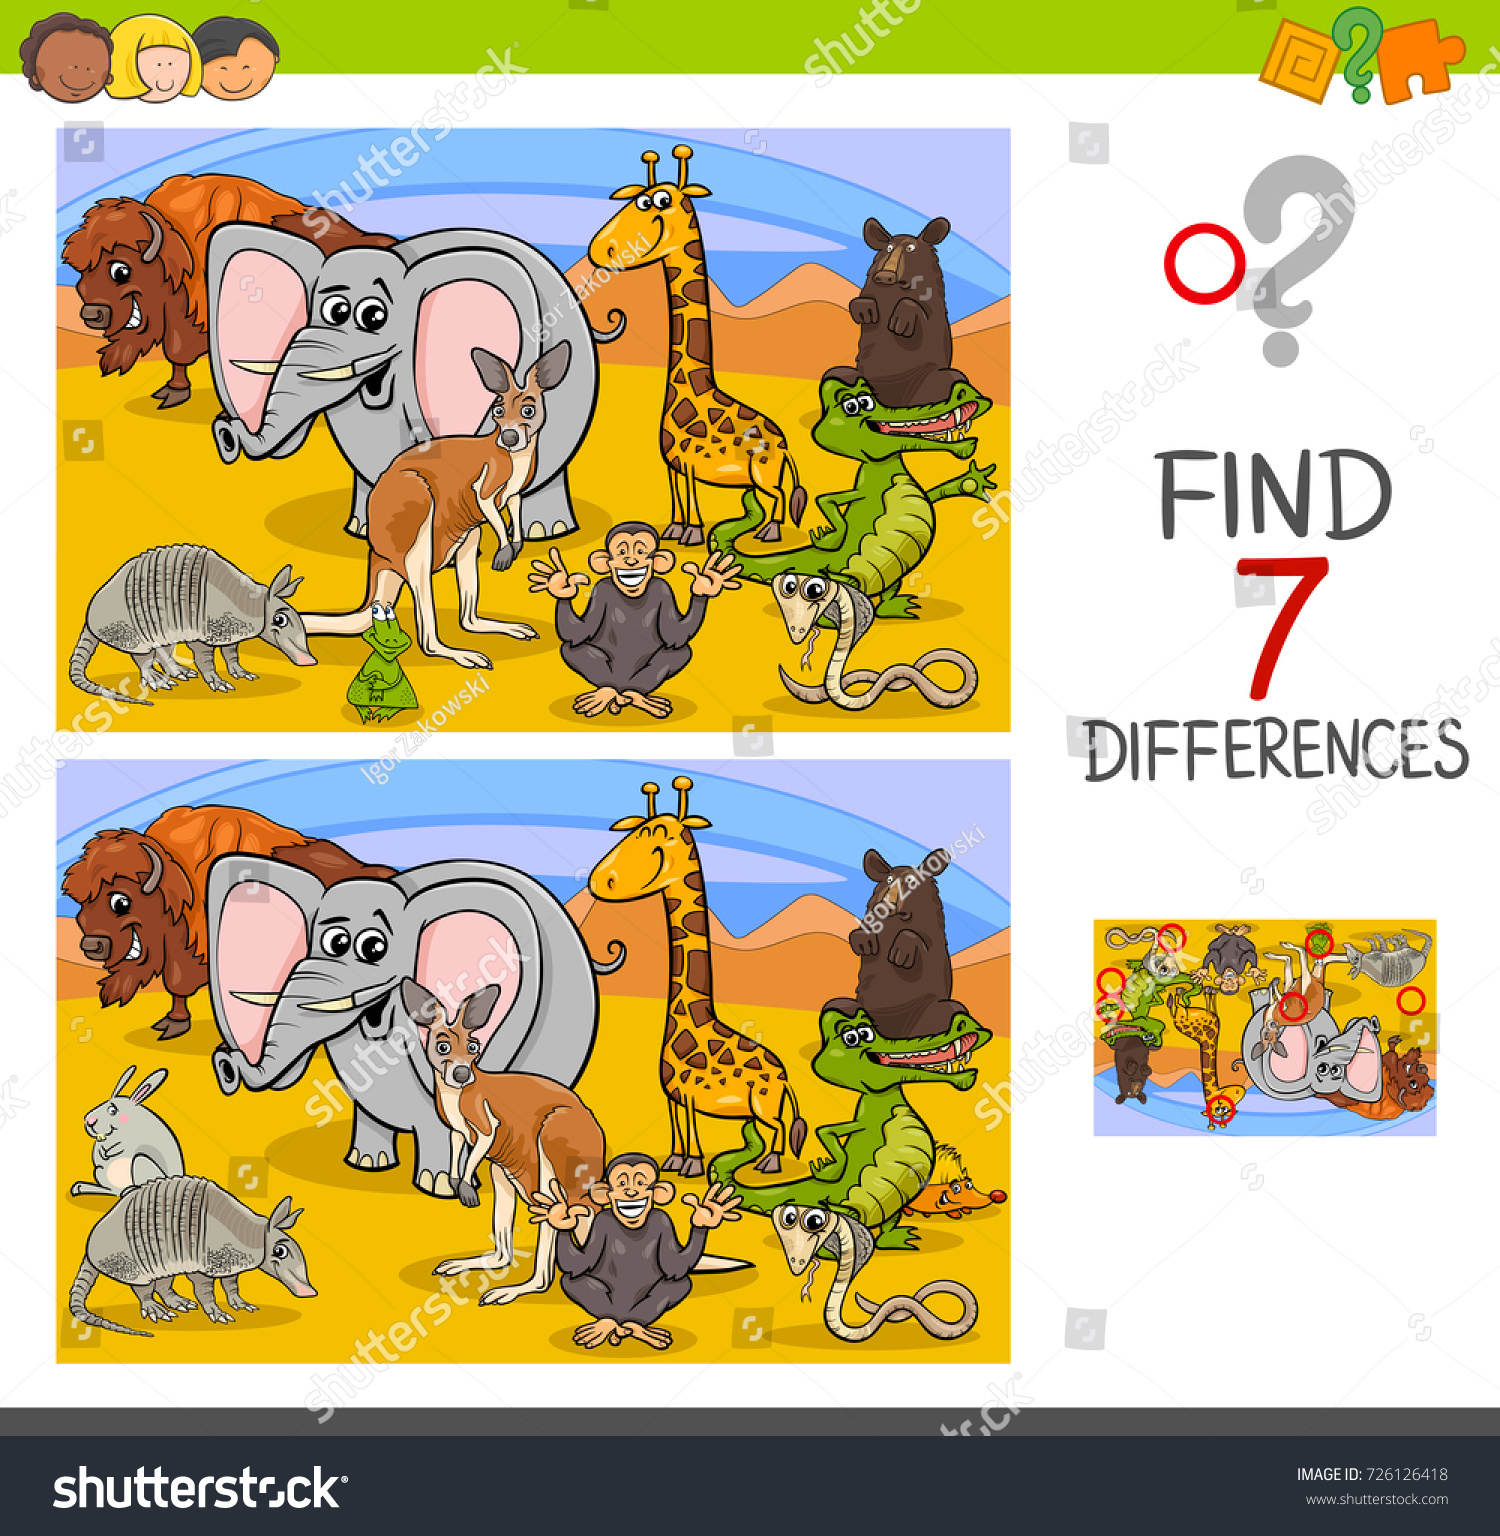 Cartoon illustration of searching differences between pictures educational activity game for children with wild animal characters